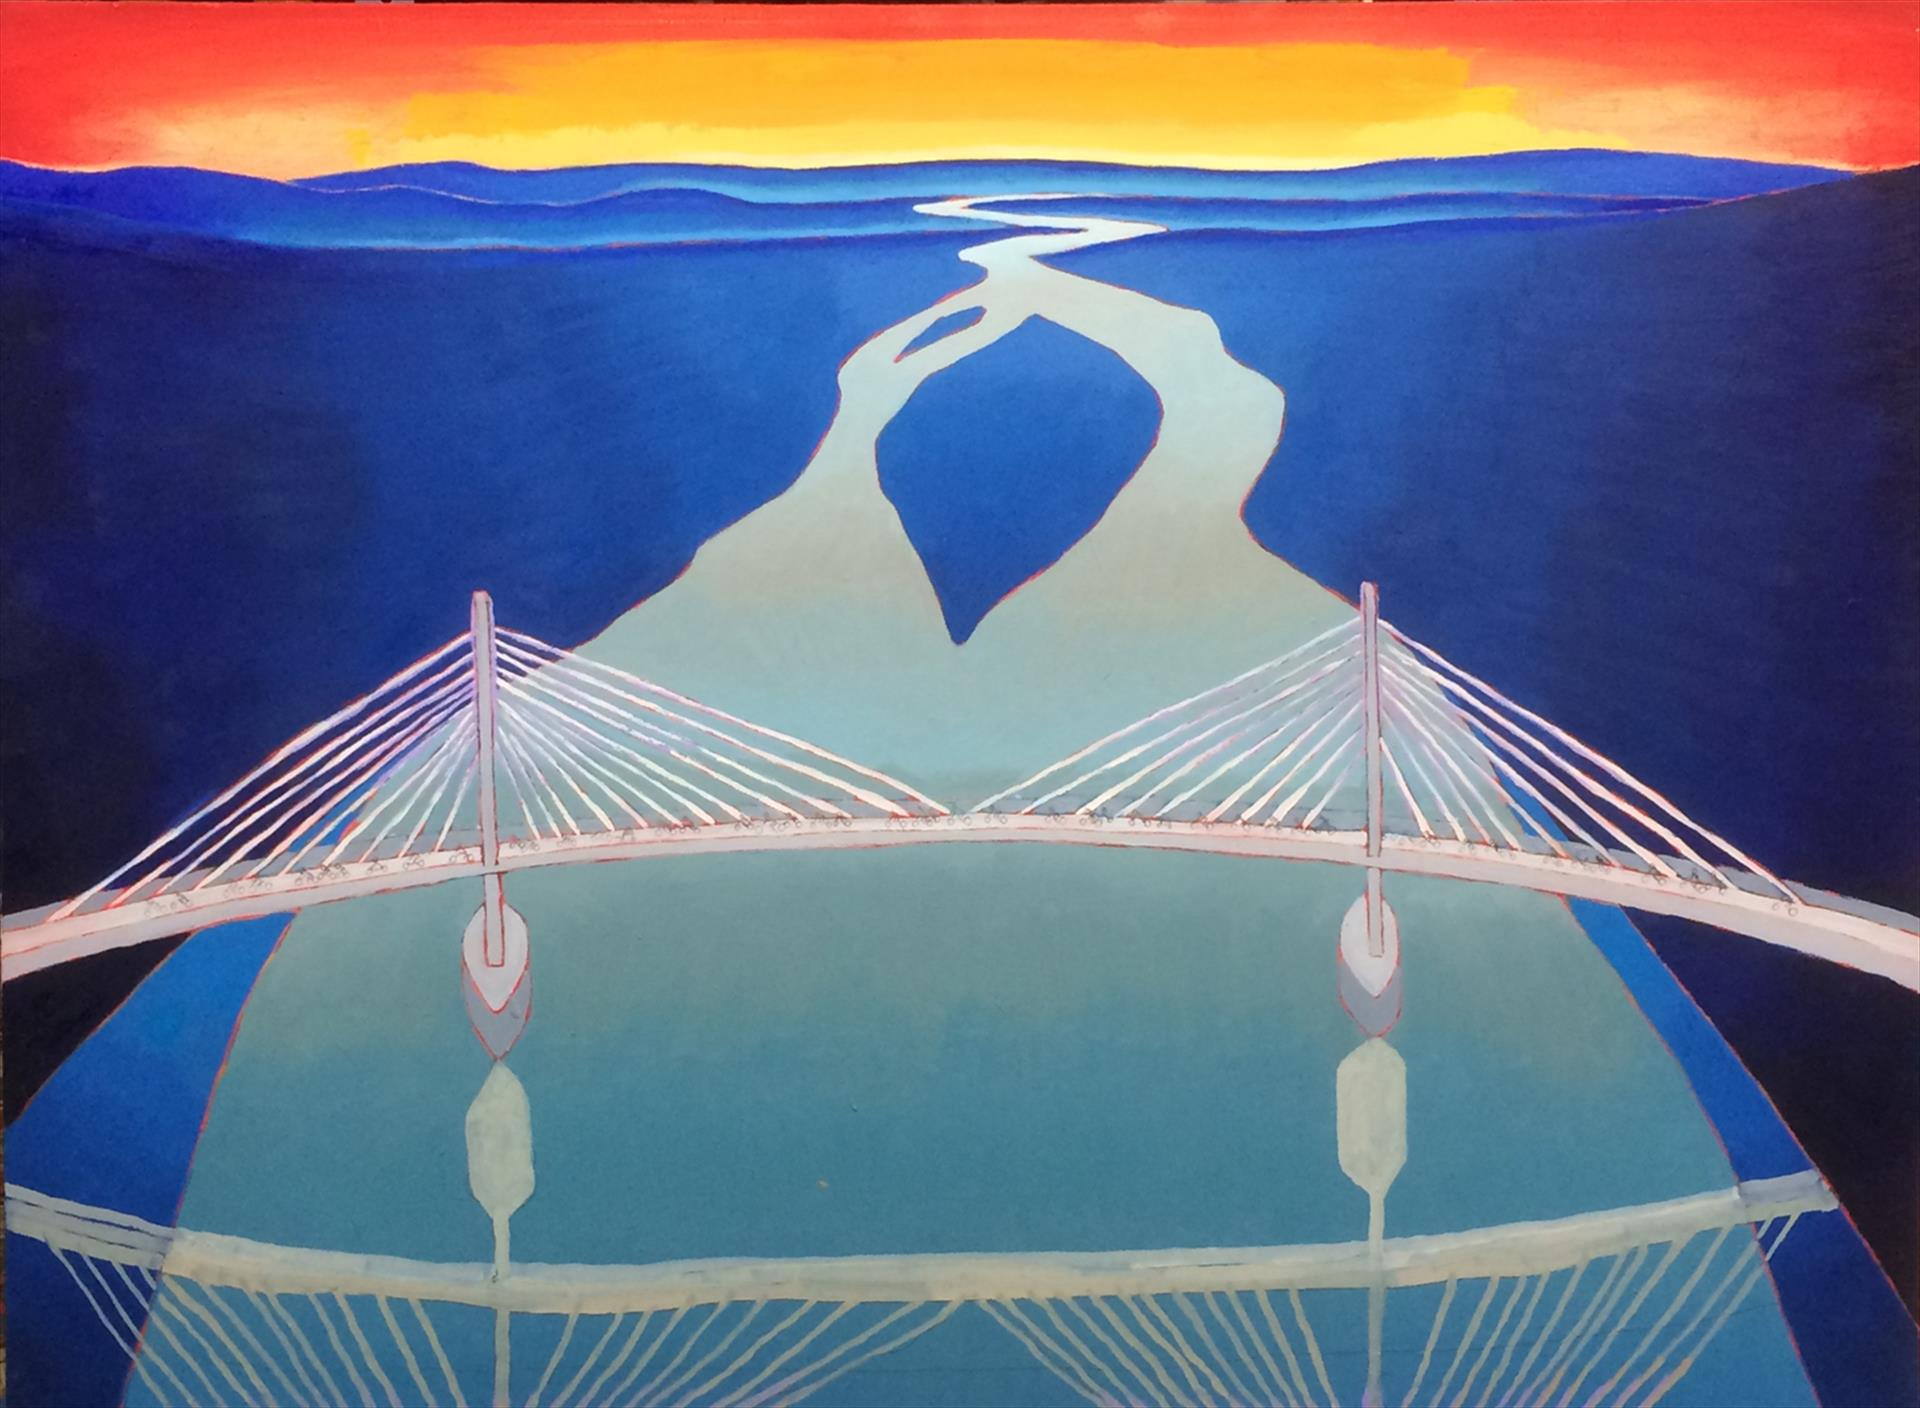 Christopher Bibby, Tilikum Crossing 2